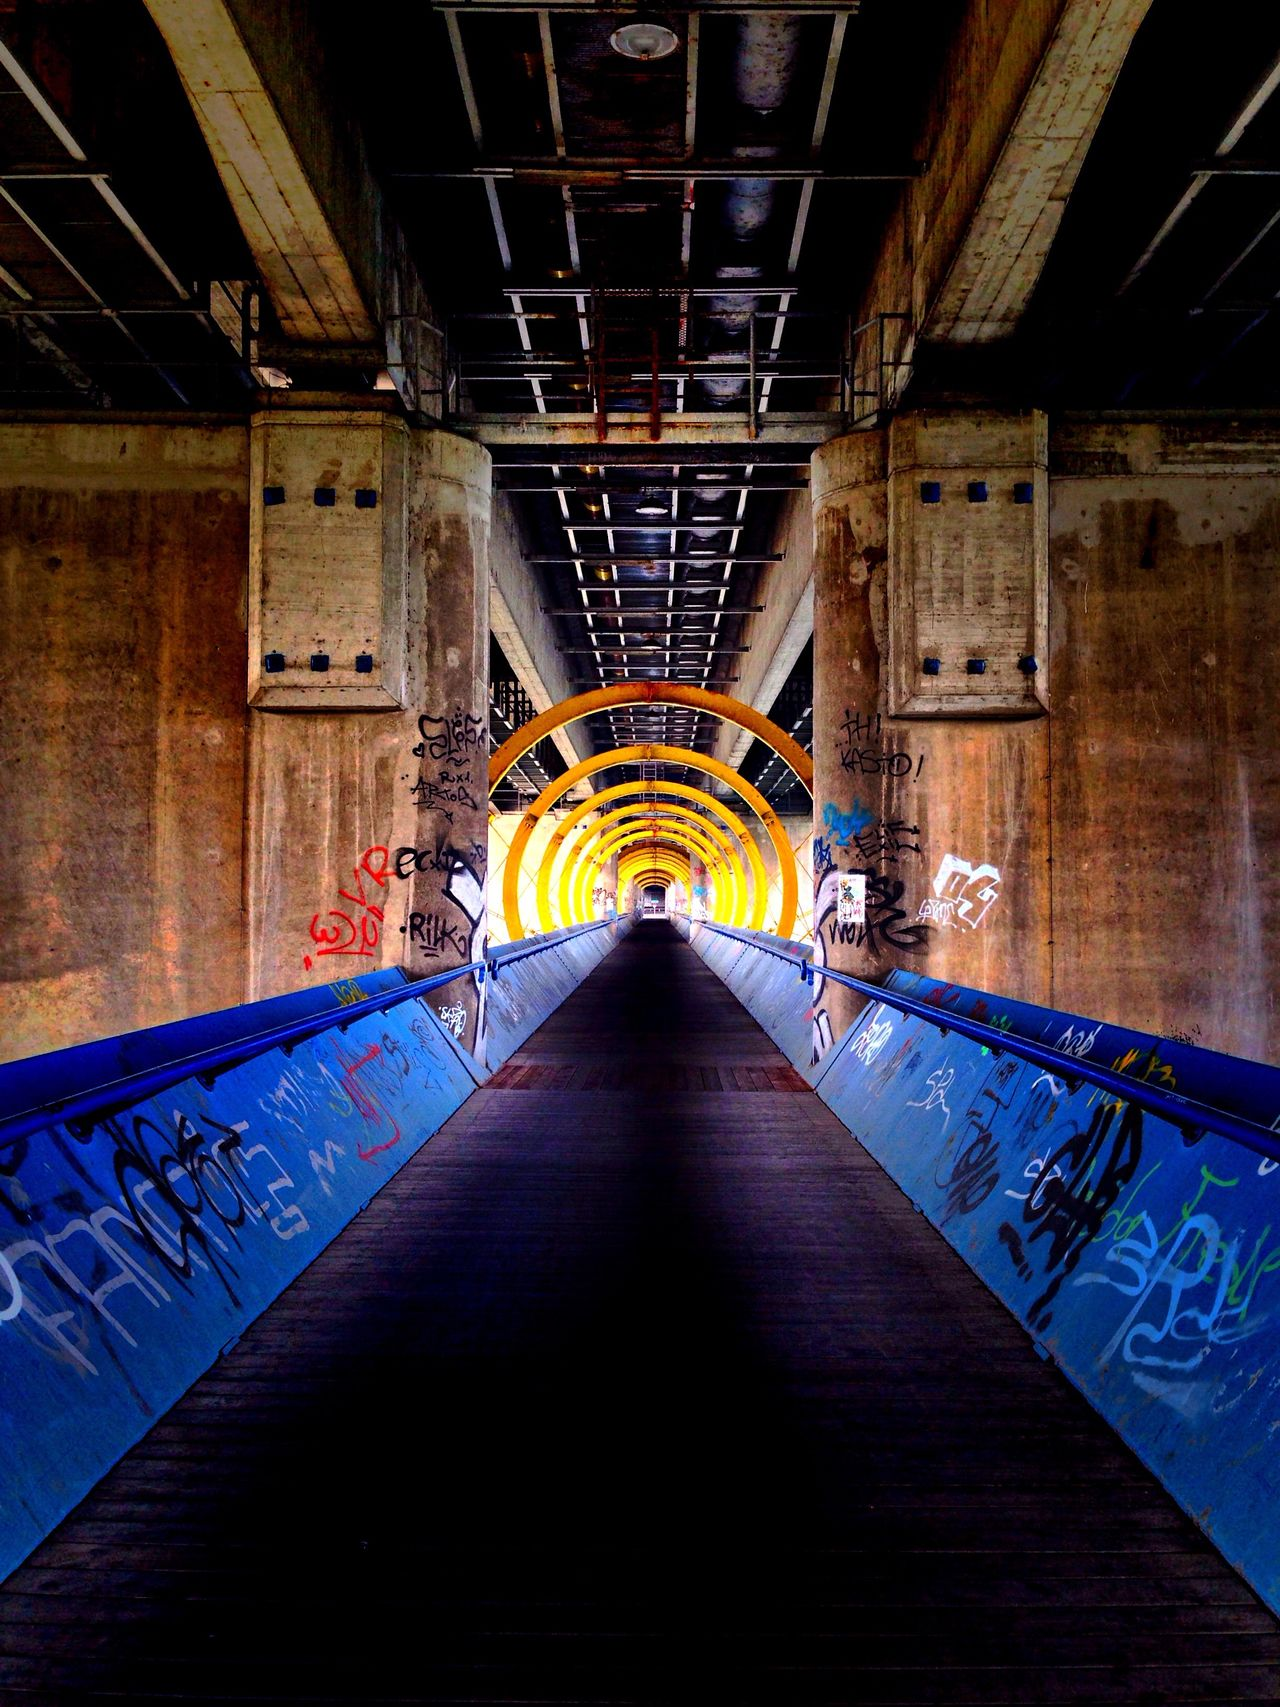 Streetphotography Street Photography Streetart Bridge HDR Hdr_Collection Hdr Edit HDR Collection Hdrphotography Architecture Architecture_collection Structure Structures Symetry No People Architecture Colors Colorful Walk Walking Around Tunnel Tunnel Vision